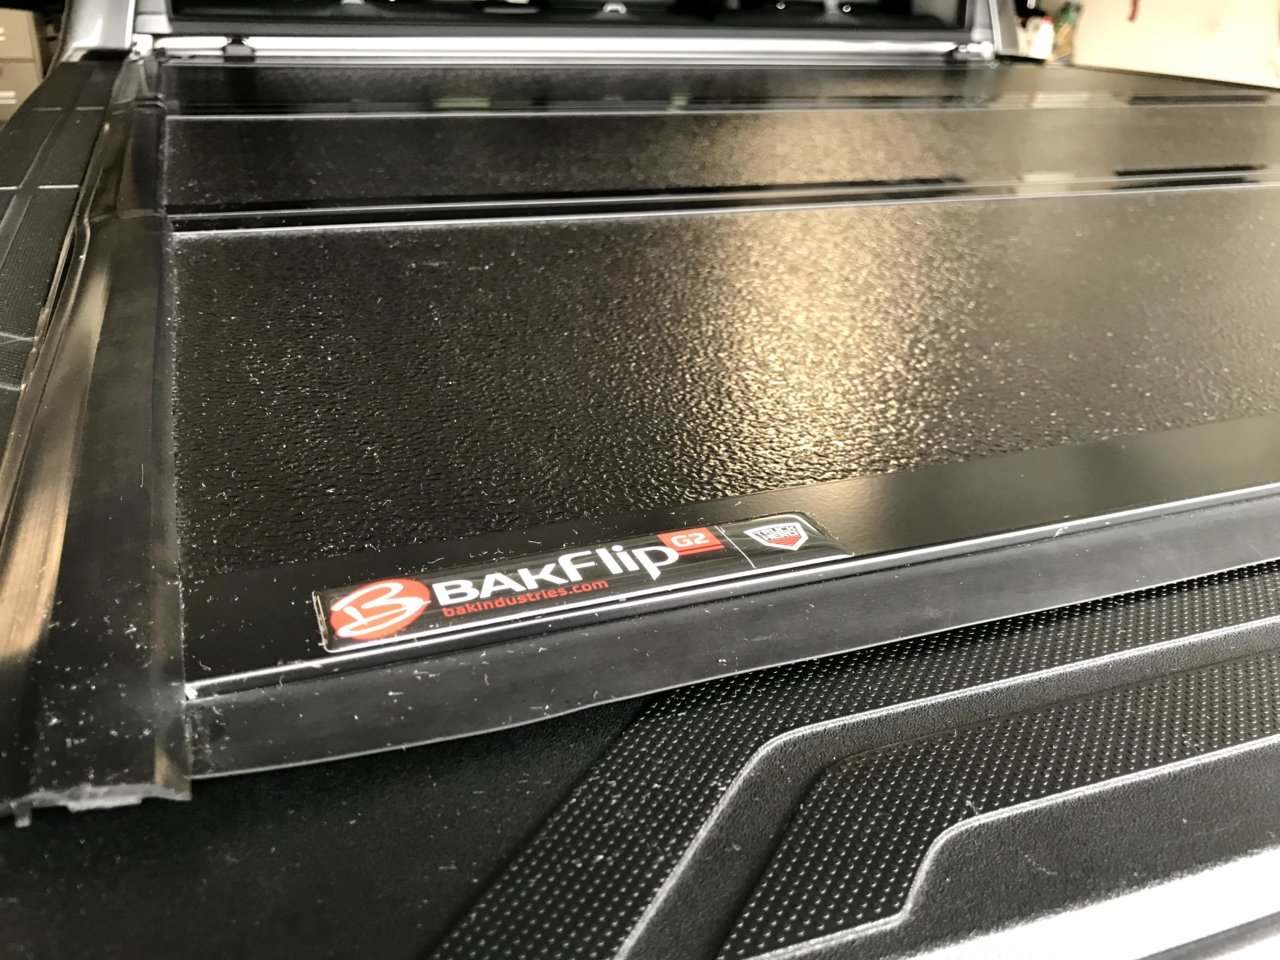 Drop in or LineX? | Page 2 | Toyota Tundra Forum